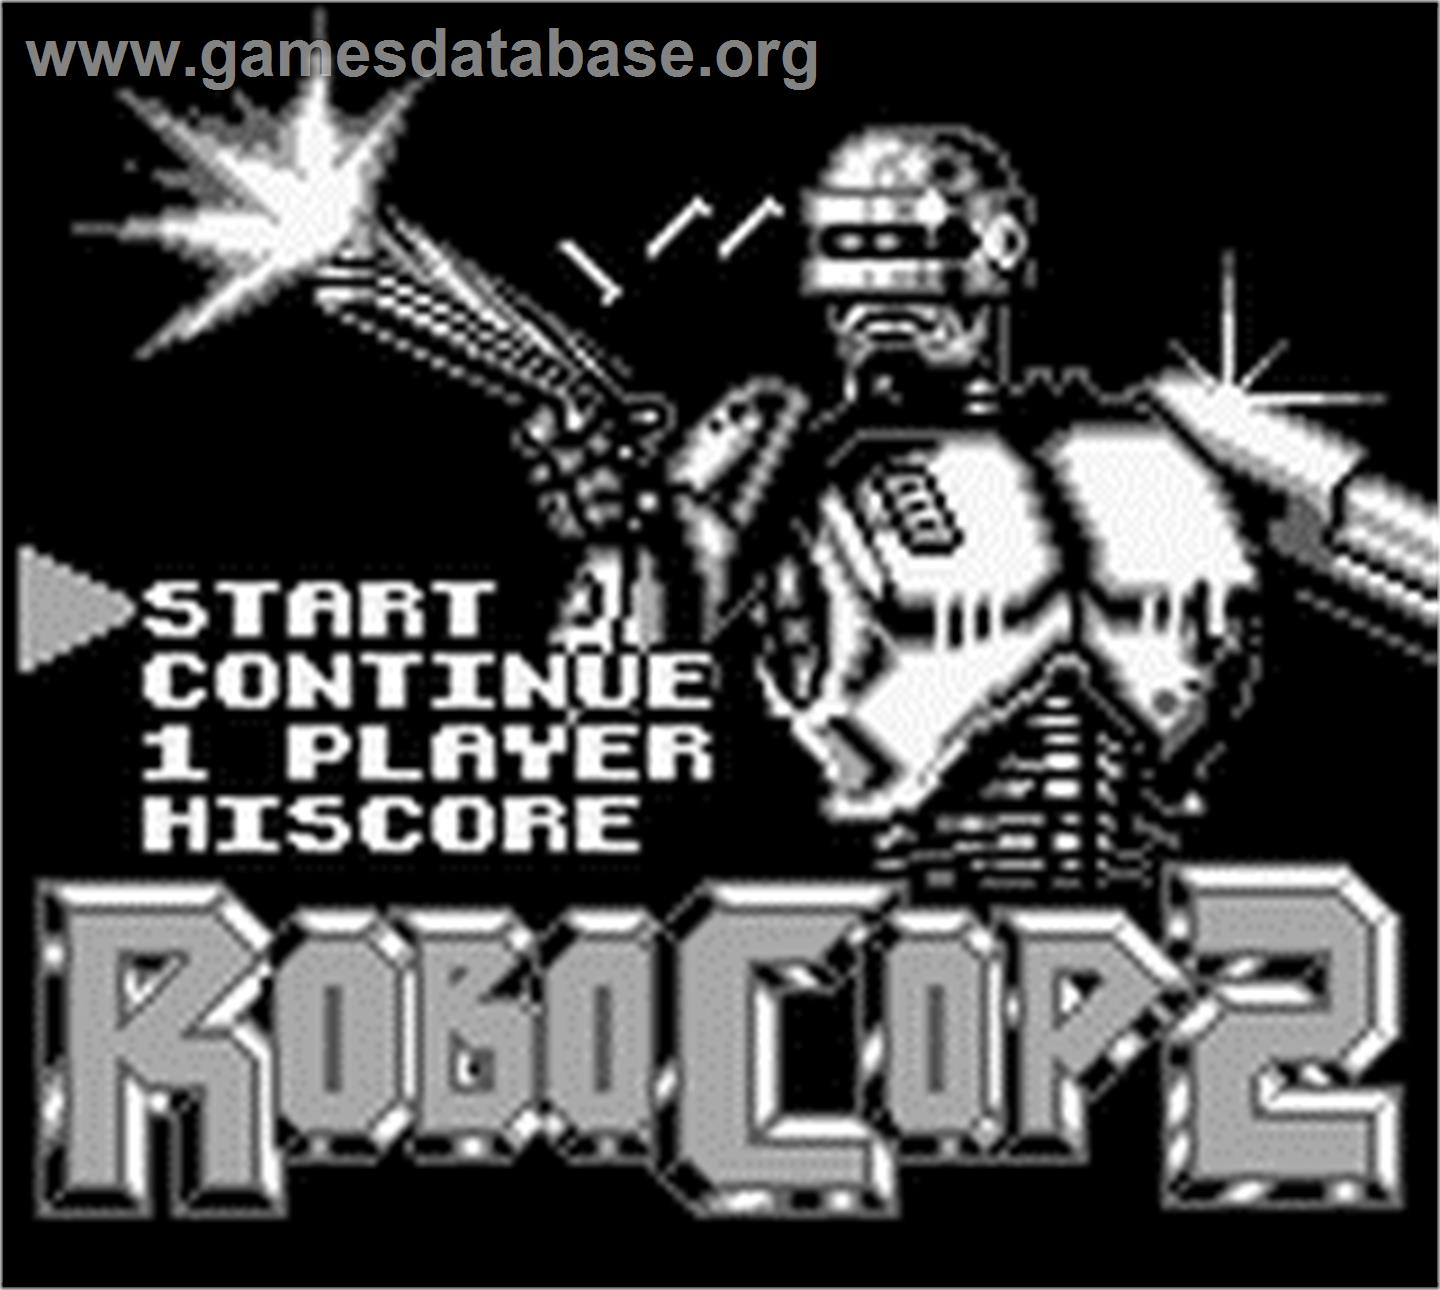 Robocop 2 Nintendo Game Boy Games Database